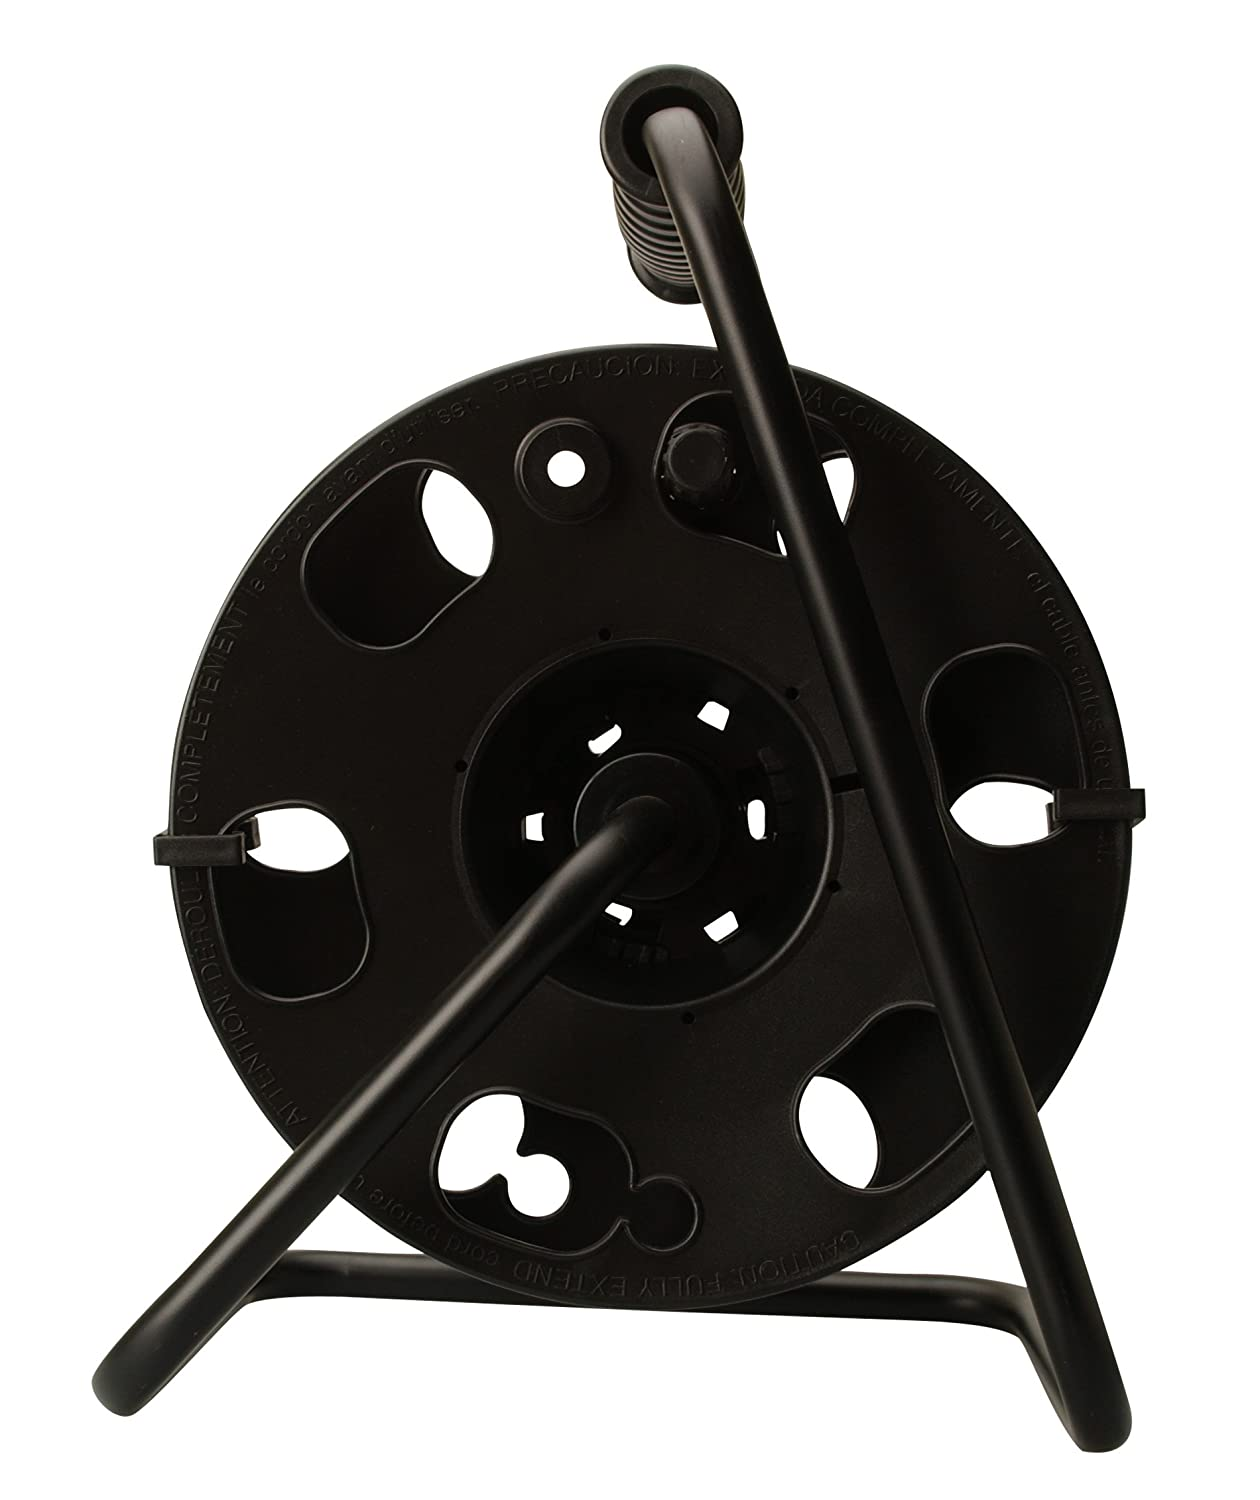 Amazon.com: Woods 22849 Metal Cord Reel Stand In Black (Holds Up To ...